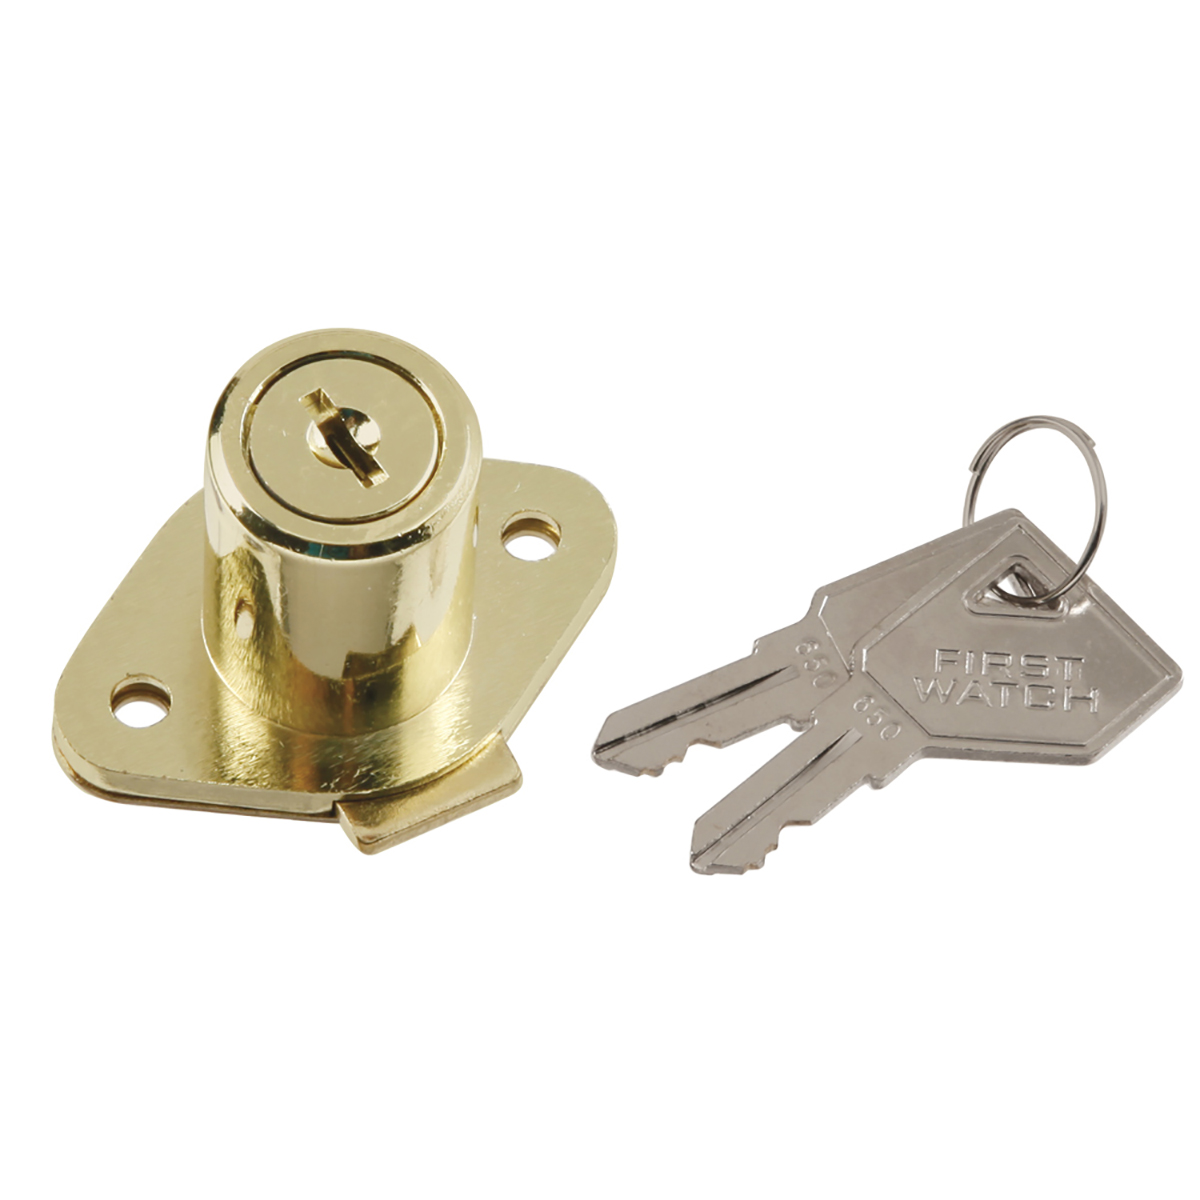 Cabinet Amp Drawer Lock First Watch Security